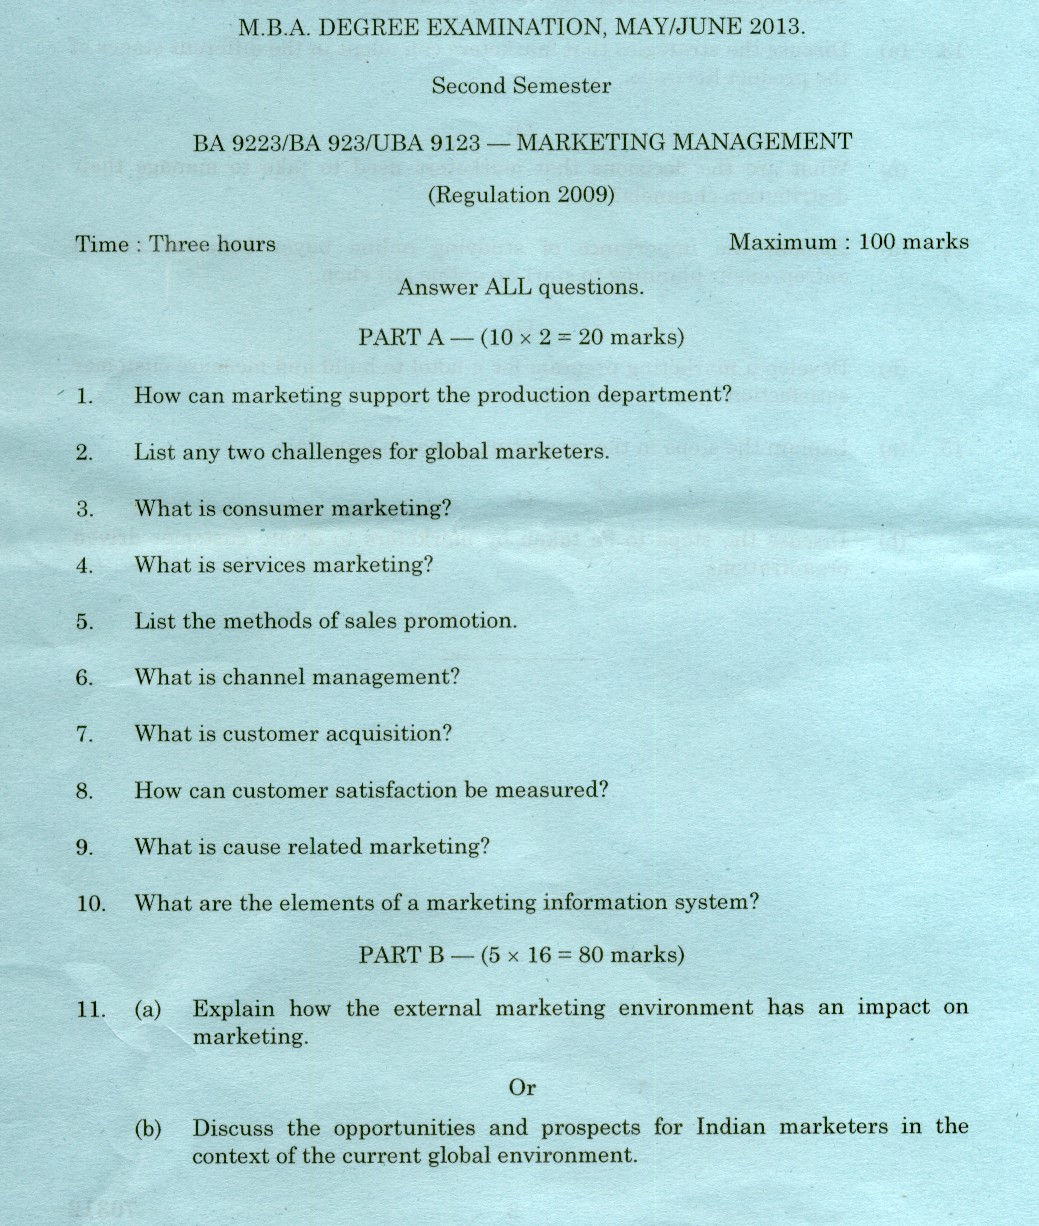 Kerala University MARKETING MANAGEMENT May 2016 Question Paper